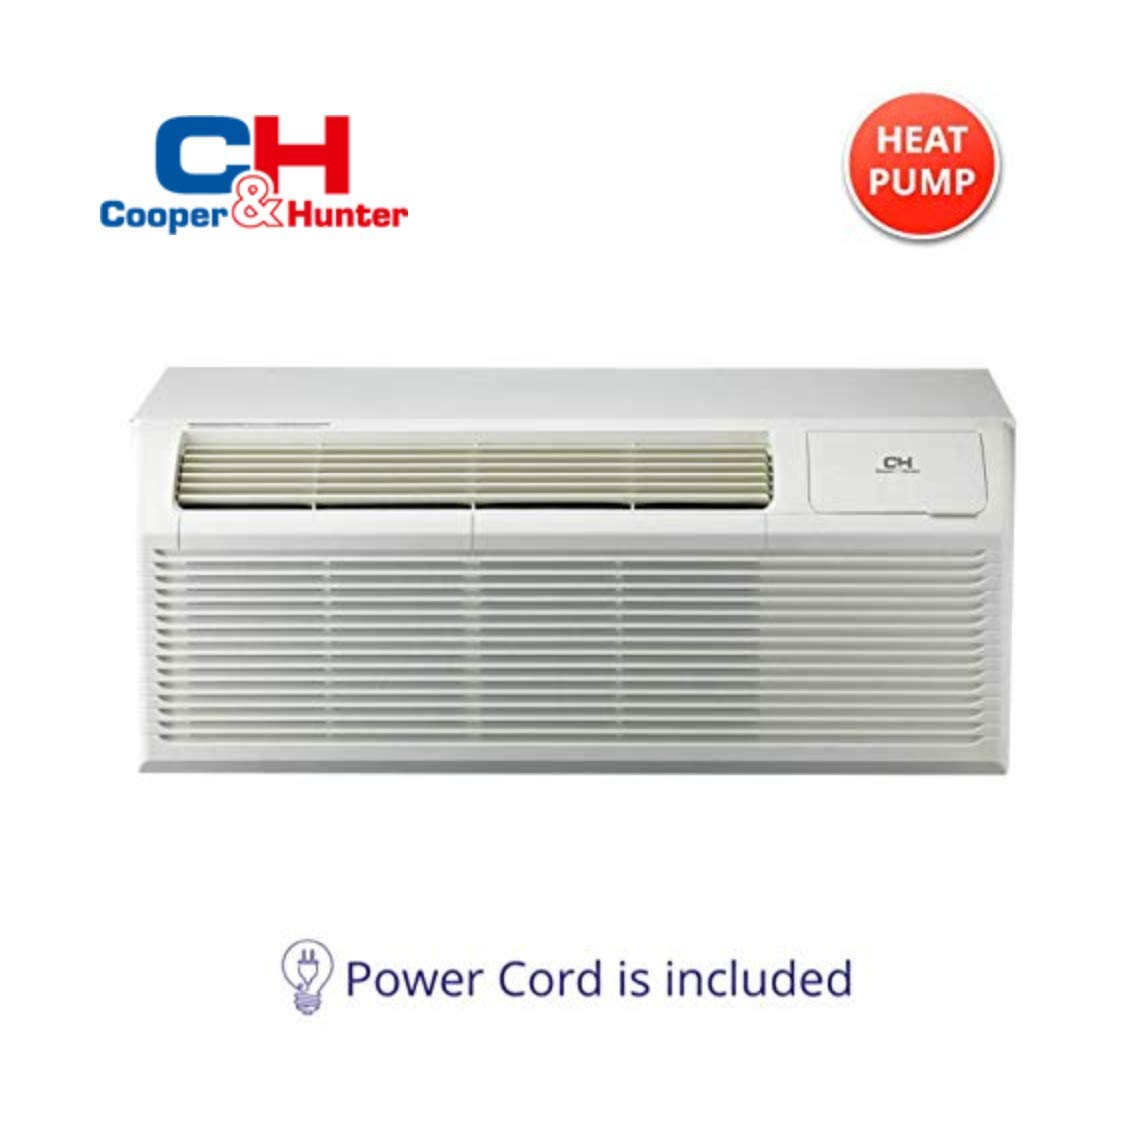 COOPER AND HUNTER 12,000 BTU PTAC Packaged Terminal Air Conditioner With Heat Pump PTHP Unit Heating And Cooling With Electric Cord